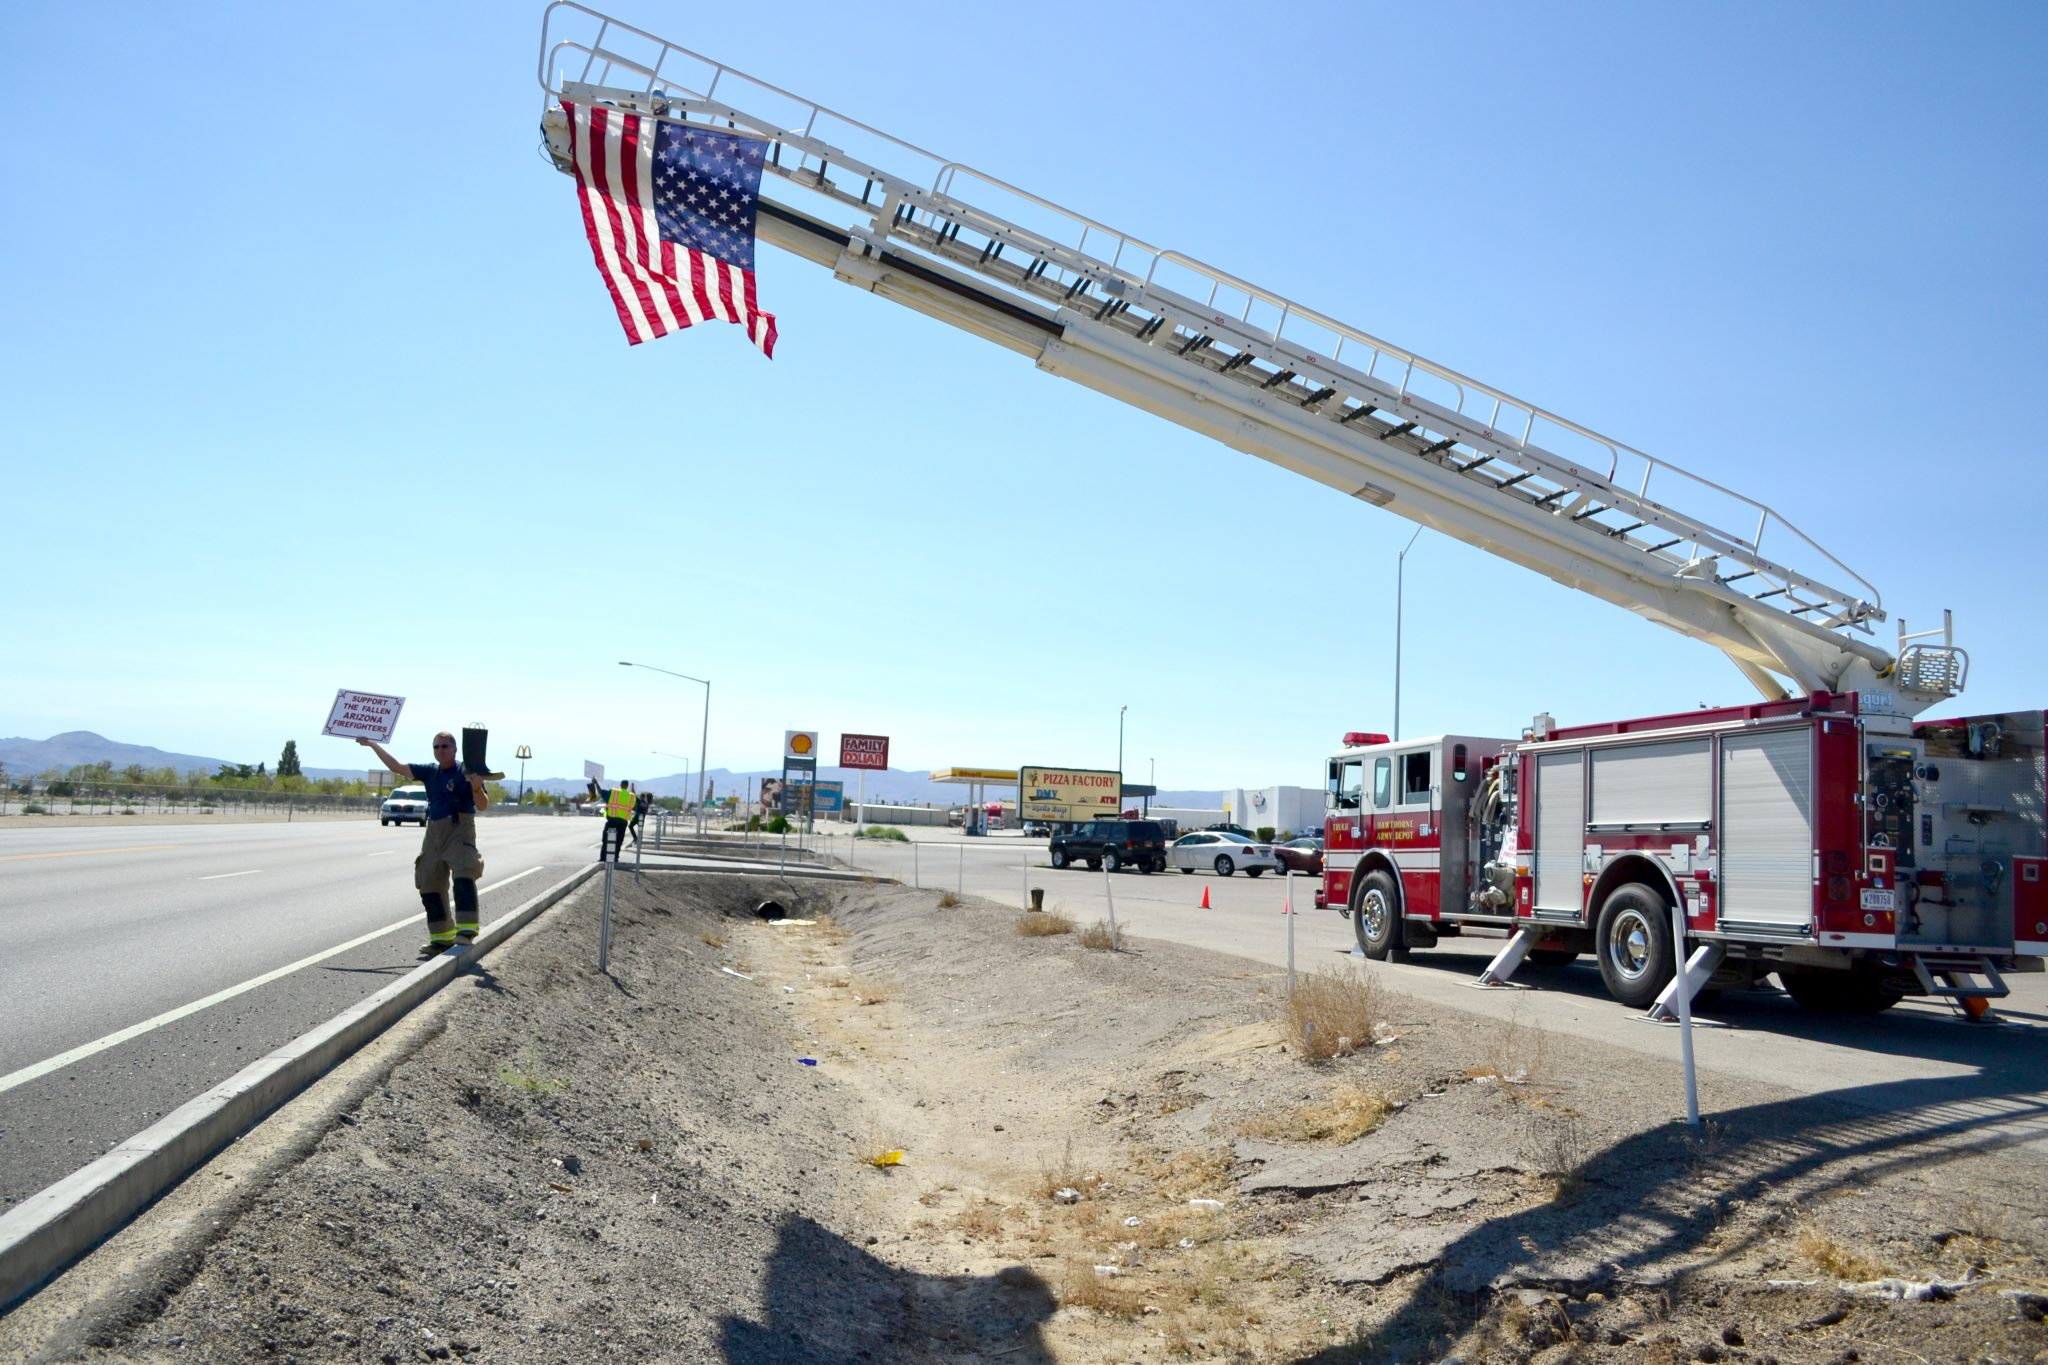 Local firefighters raise funds for fallen AZ crew